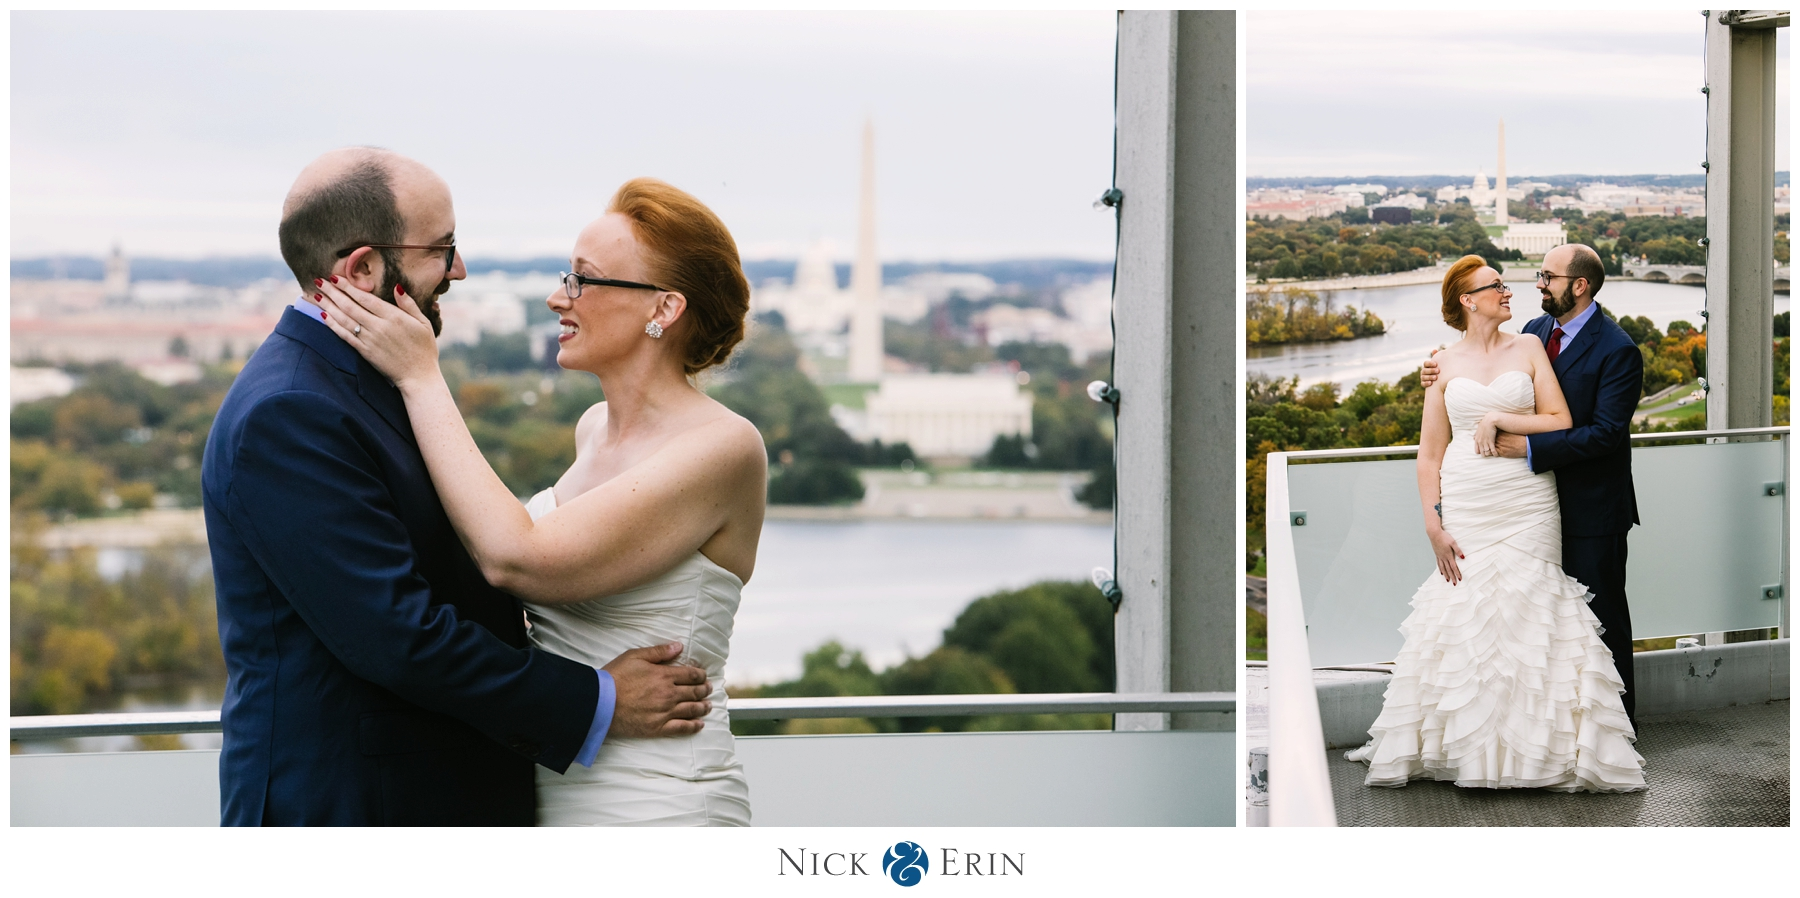 donner_photography_washington-dc-wedding_alanna-josh_0032